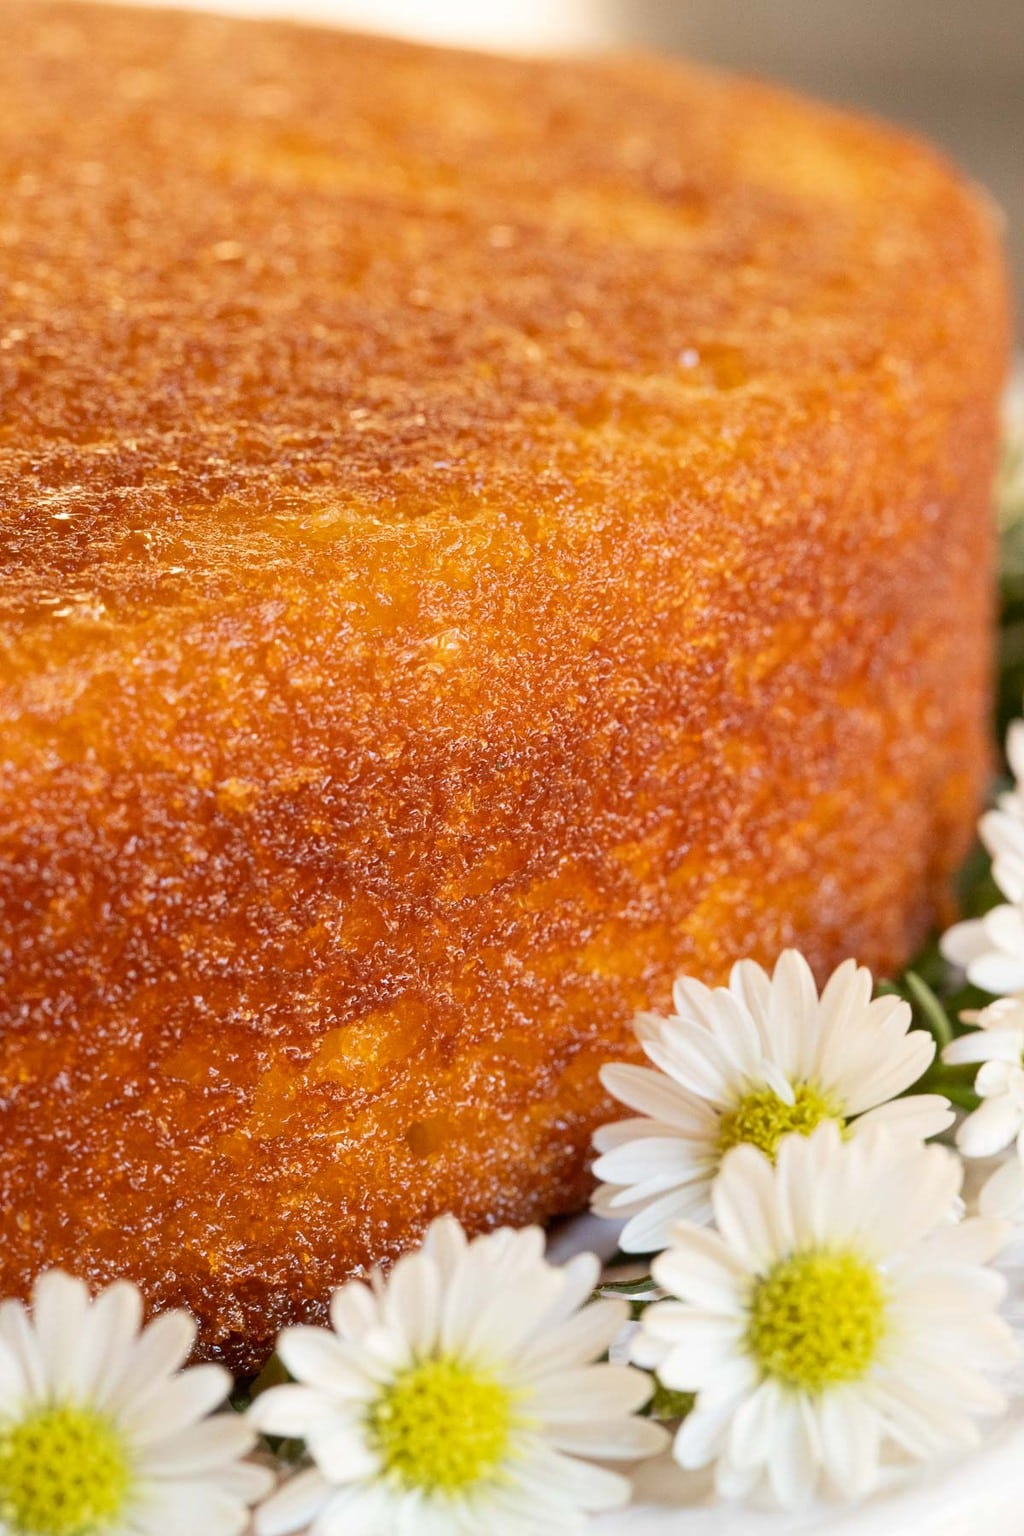 Vertical extreme closeup photo of the side of a Ridiculously Easy Orange Olive Oil Cake garnished with mini daisies.